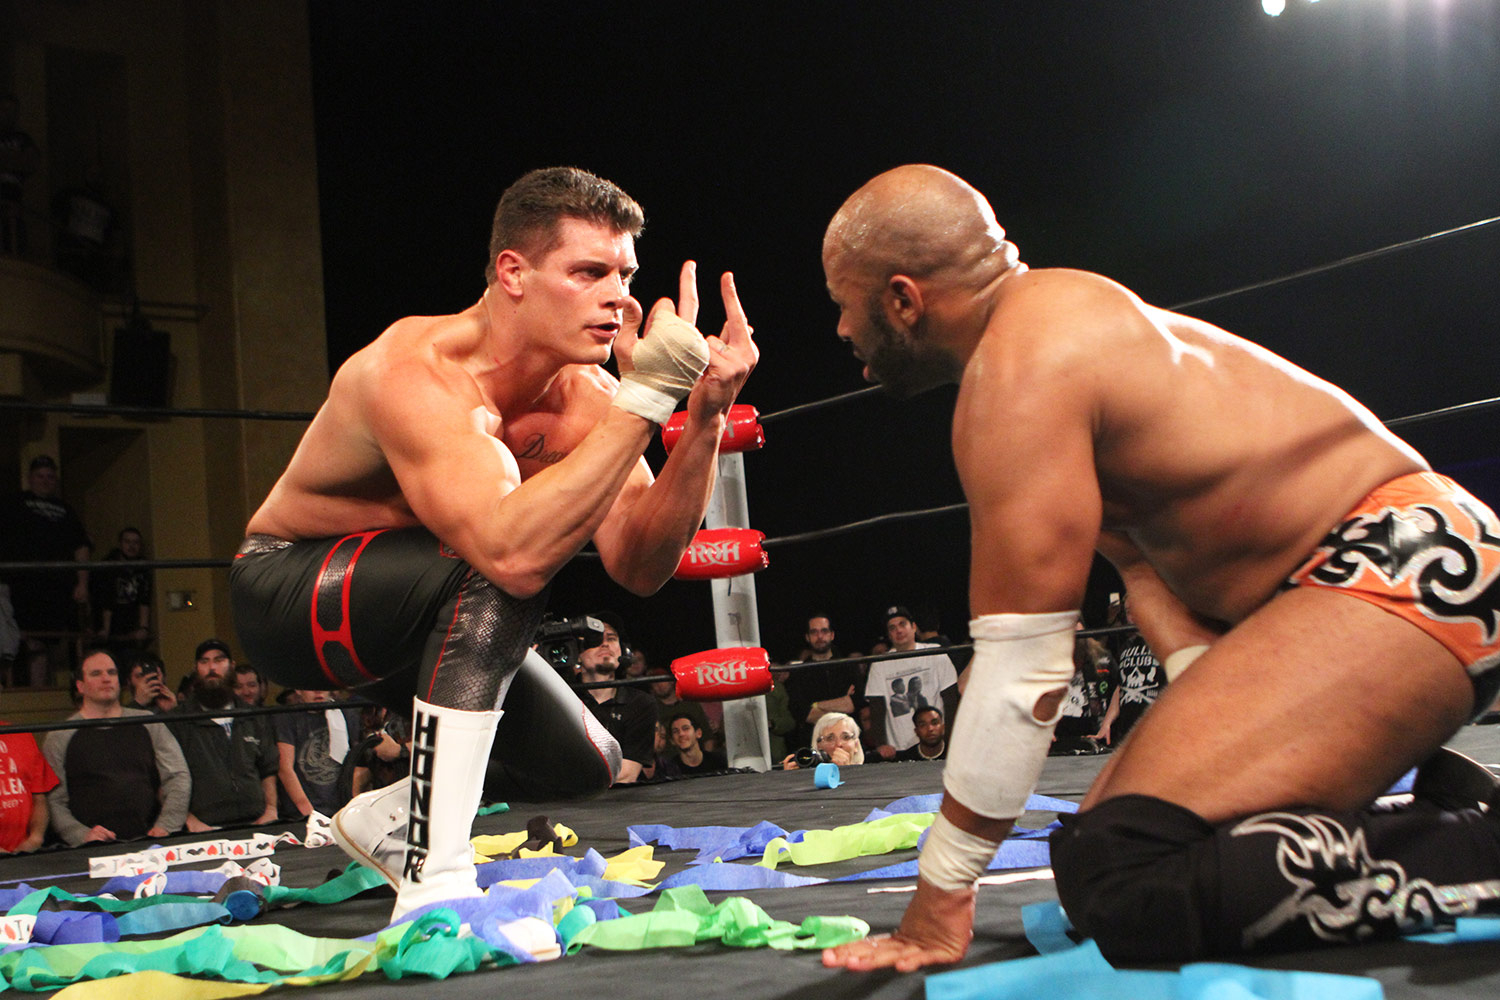 Cody Rhodes on Joining Bullet Club, Indie Wrestling